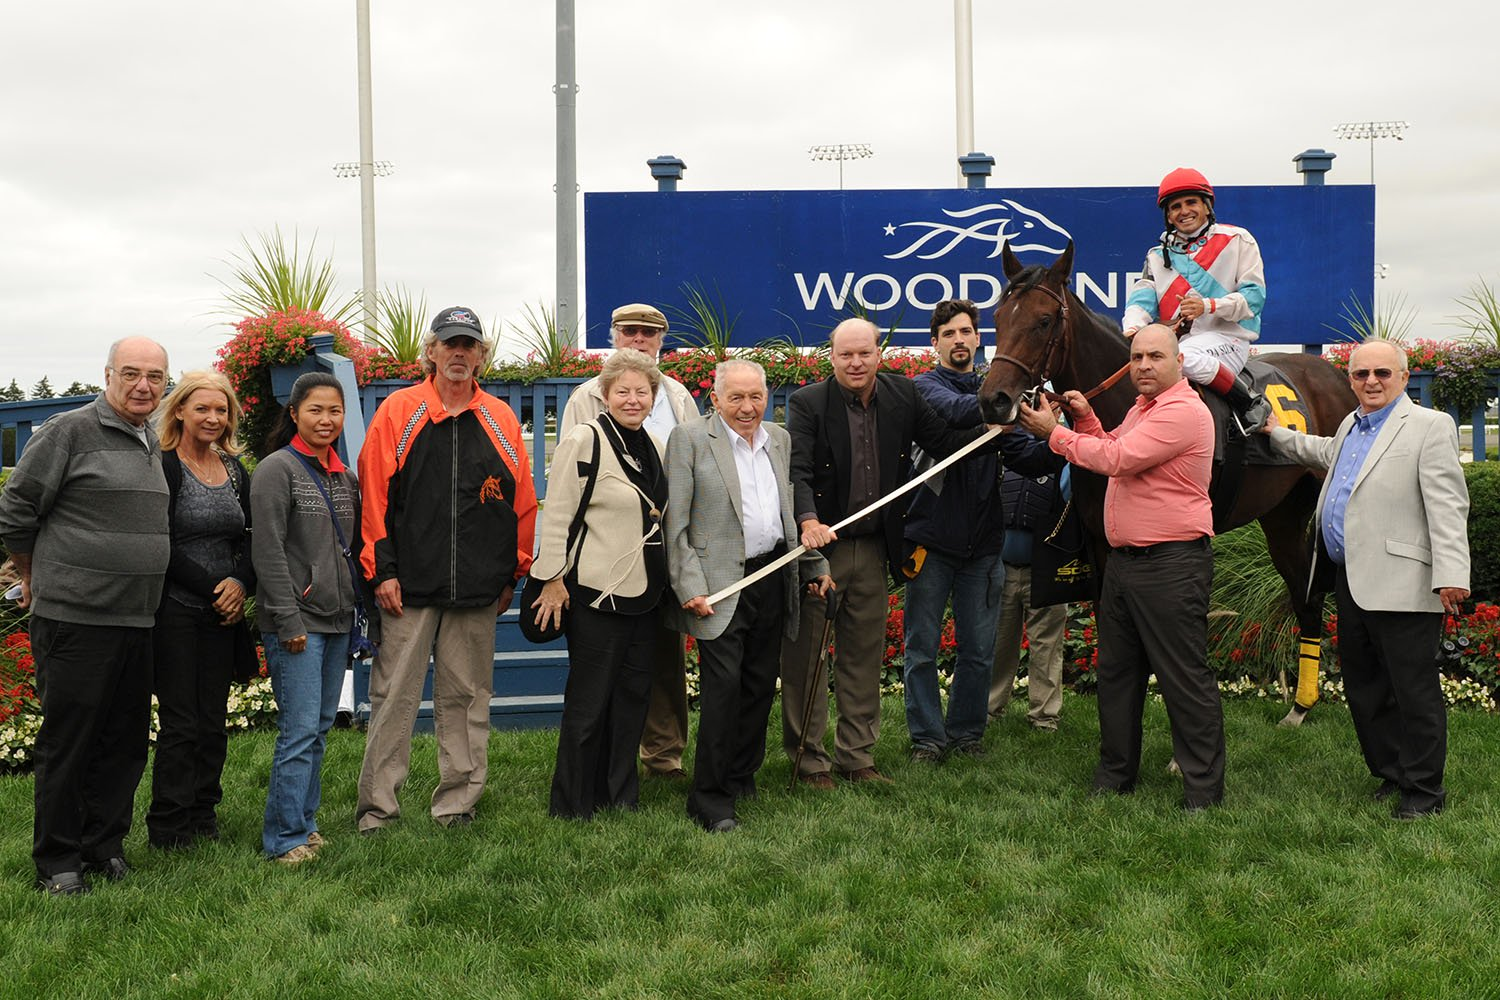 Jim Sabiston (center with grey jacket) in the winner's circle at Woodbine Racetrack with 2011 Muskoka Stakes champion Rose and Shine. (Michael Burns Photo)